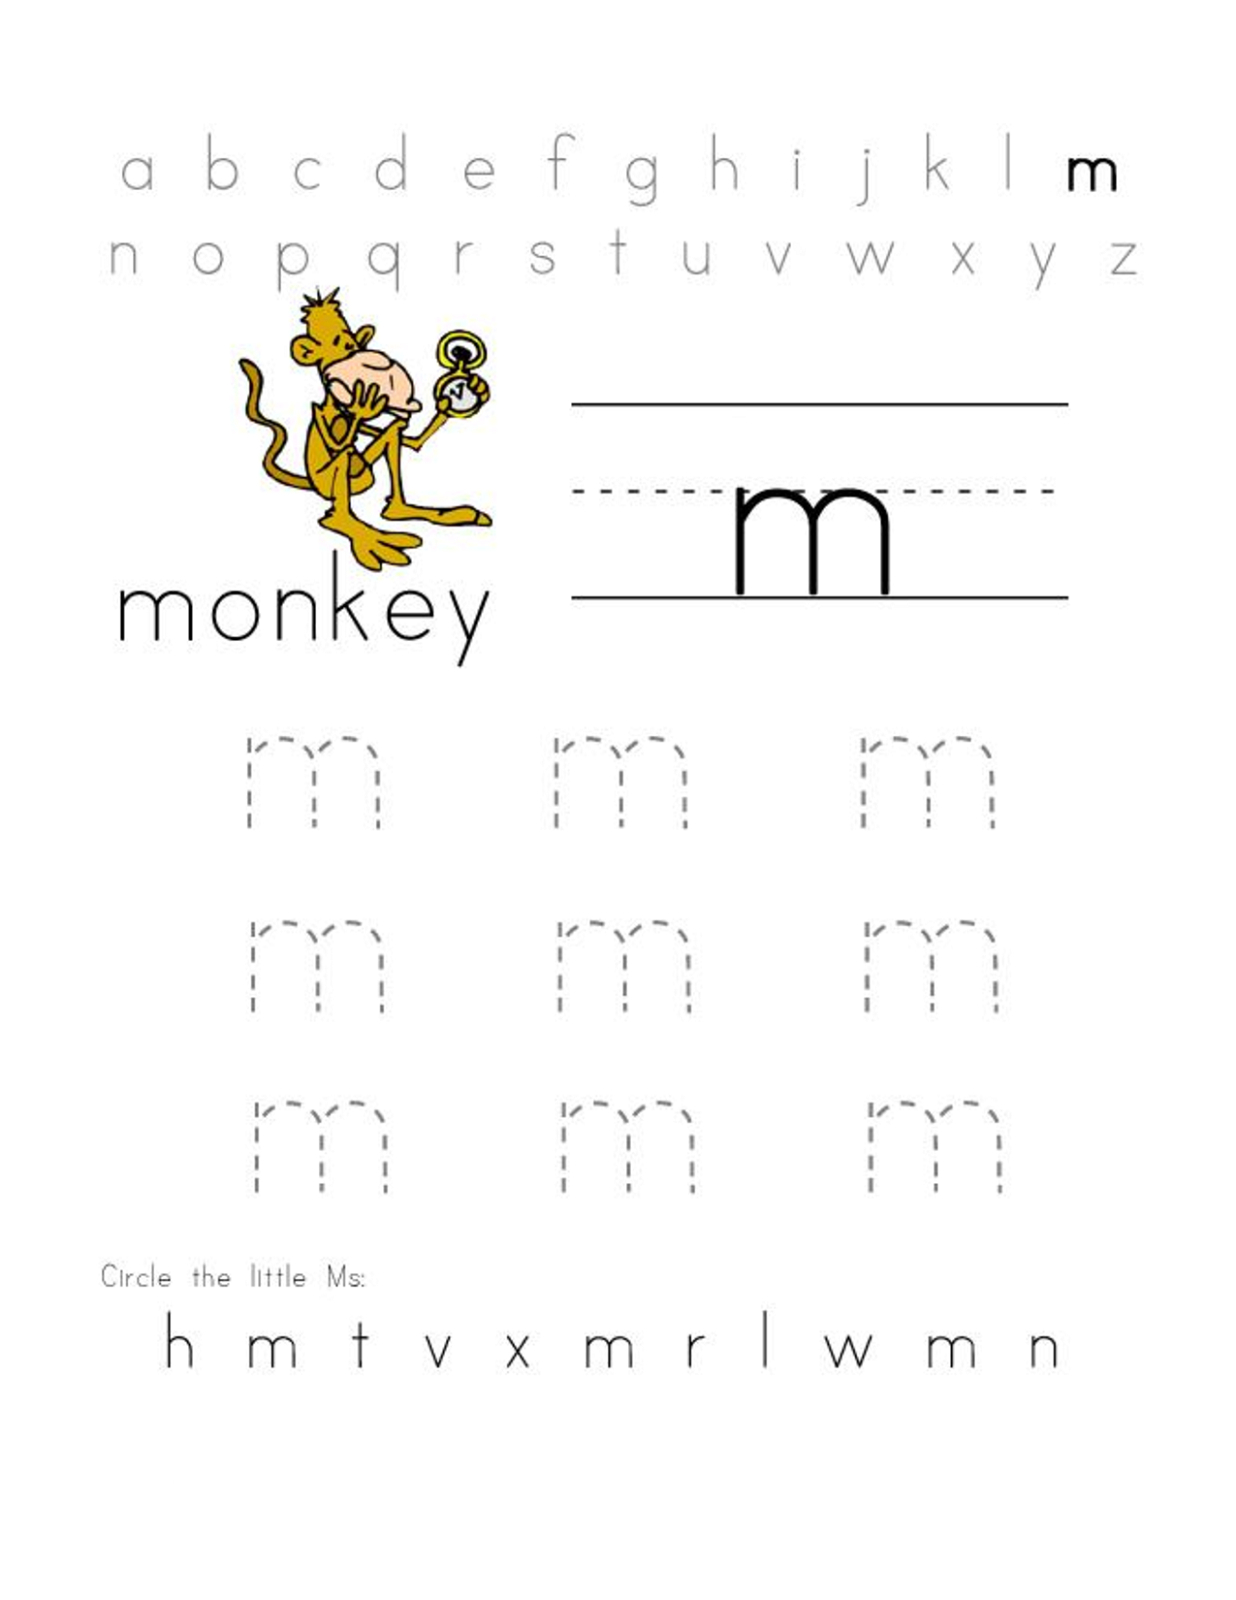 Letter M Worksheets | Activity Shelter - Letter M Puzzle Printable